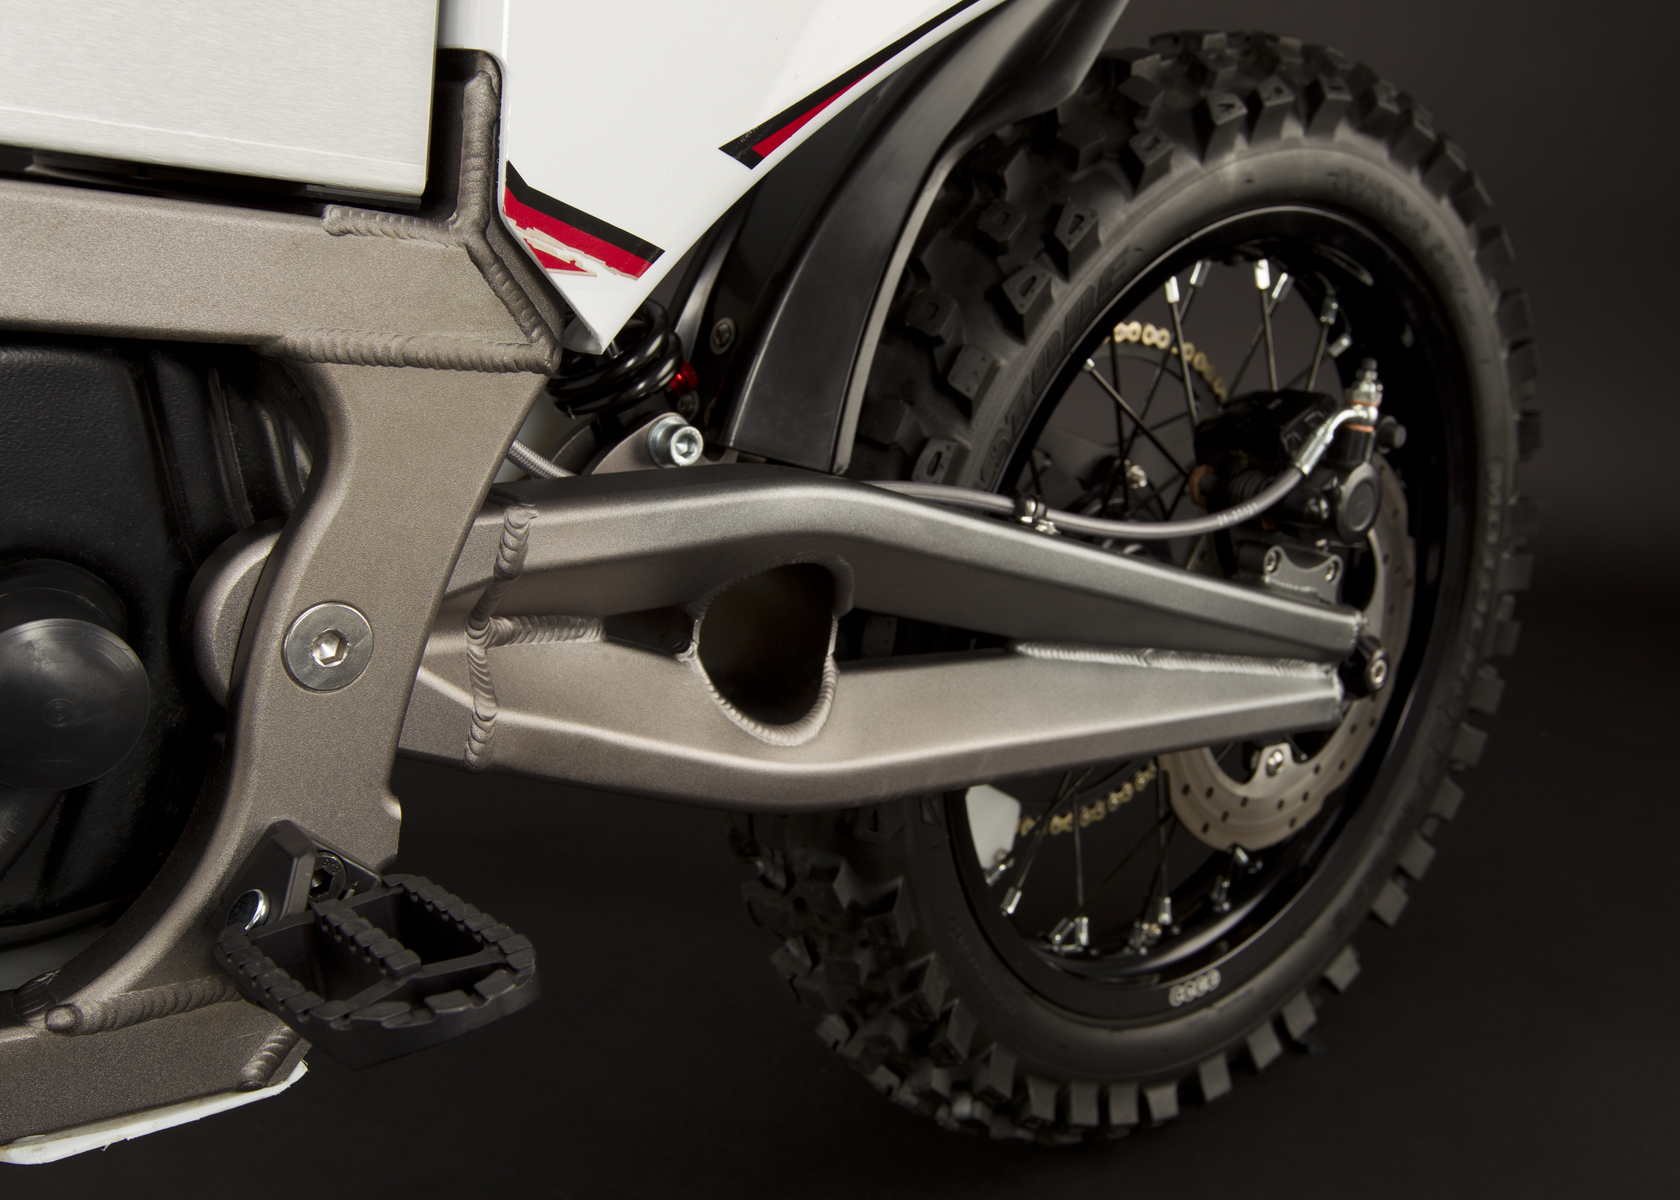 '.2011 Zero MX Electric Motorcycle: Rear tire / Rear shock.'